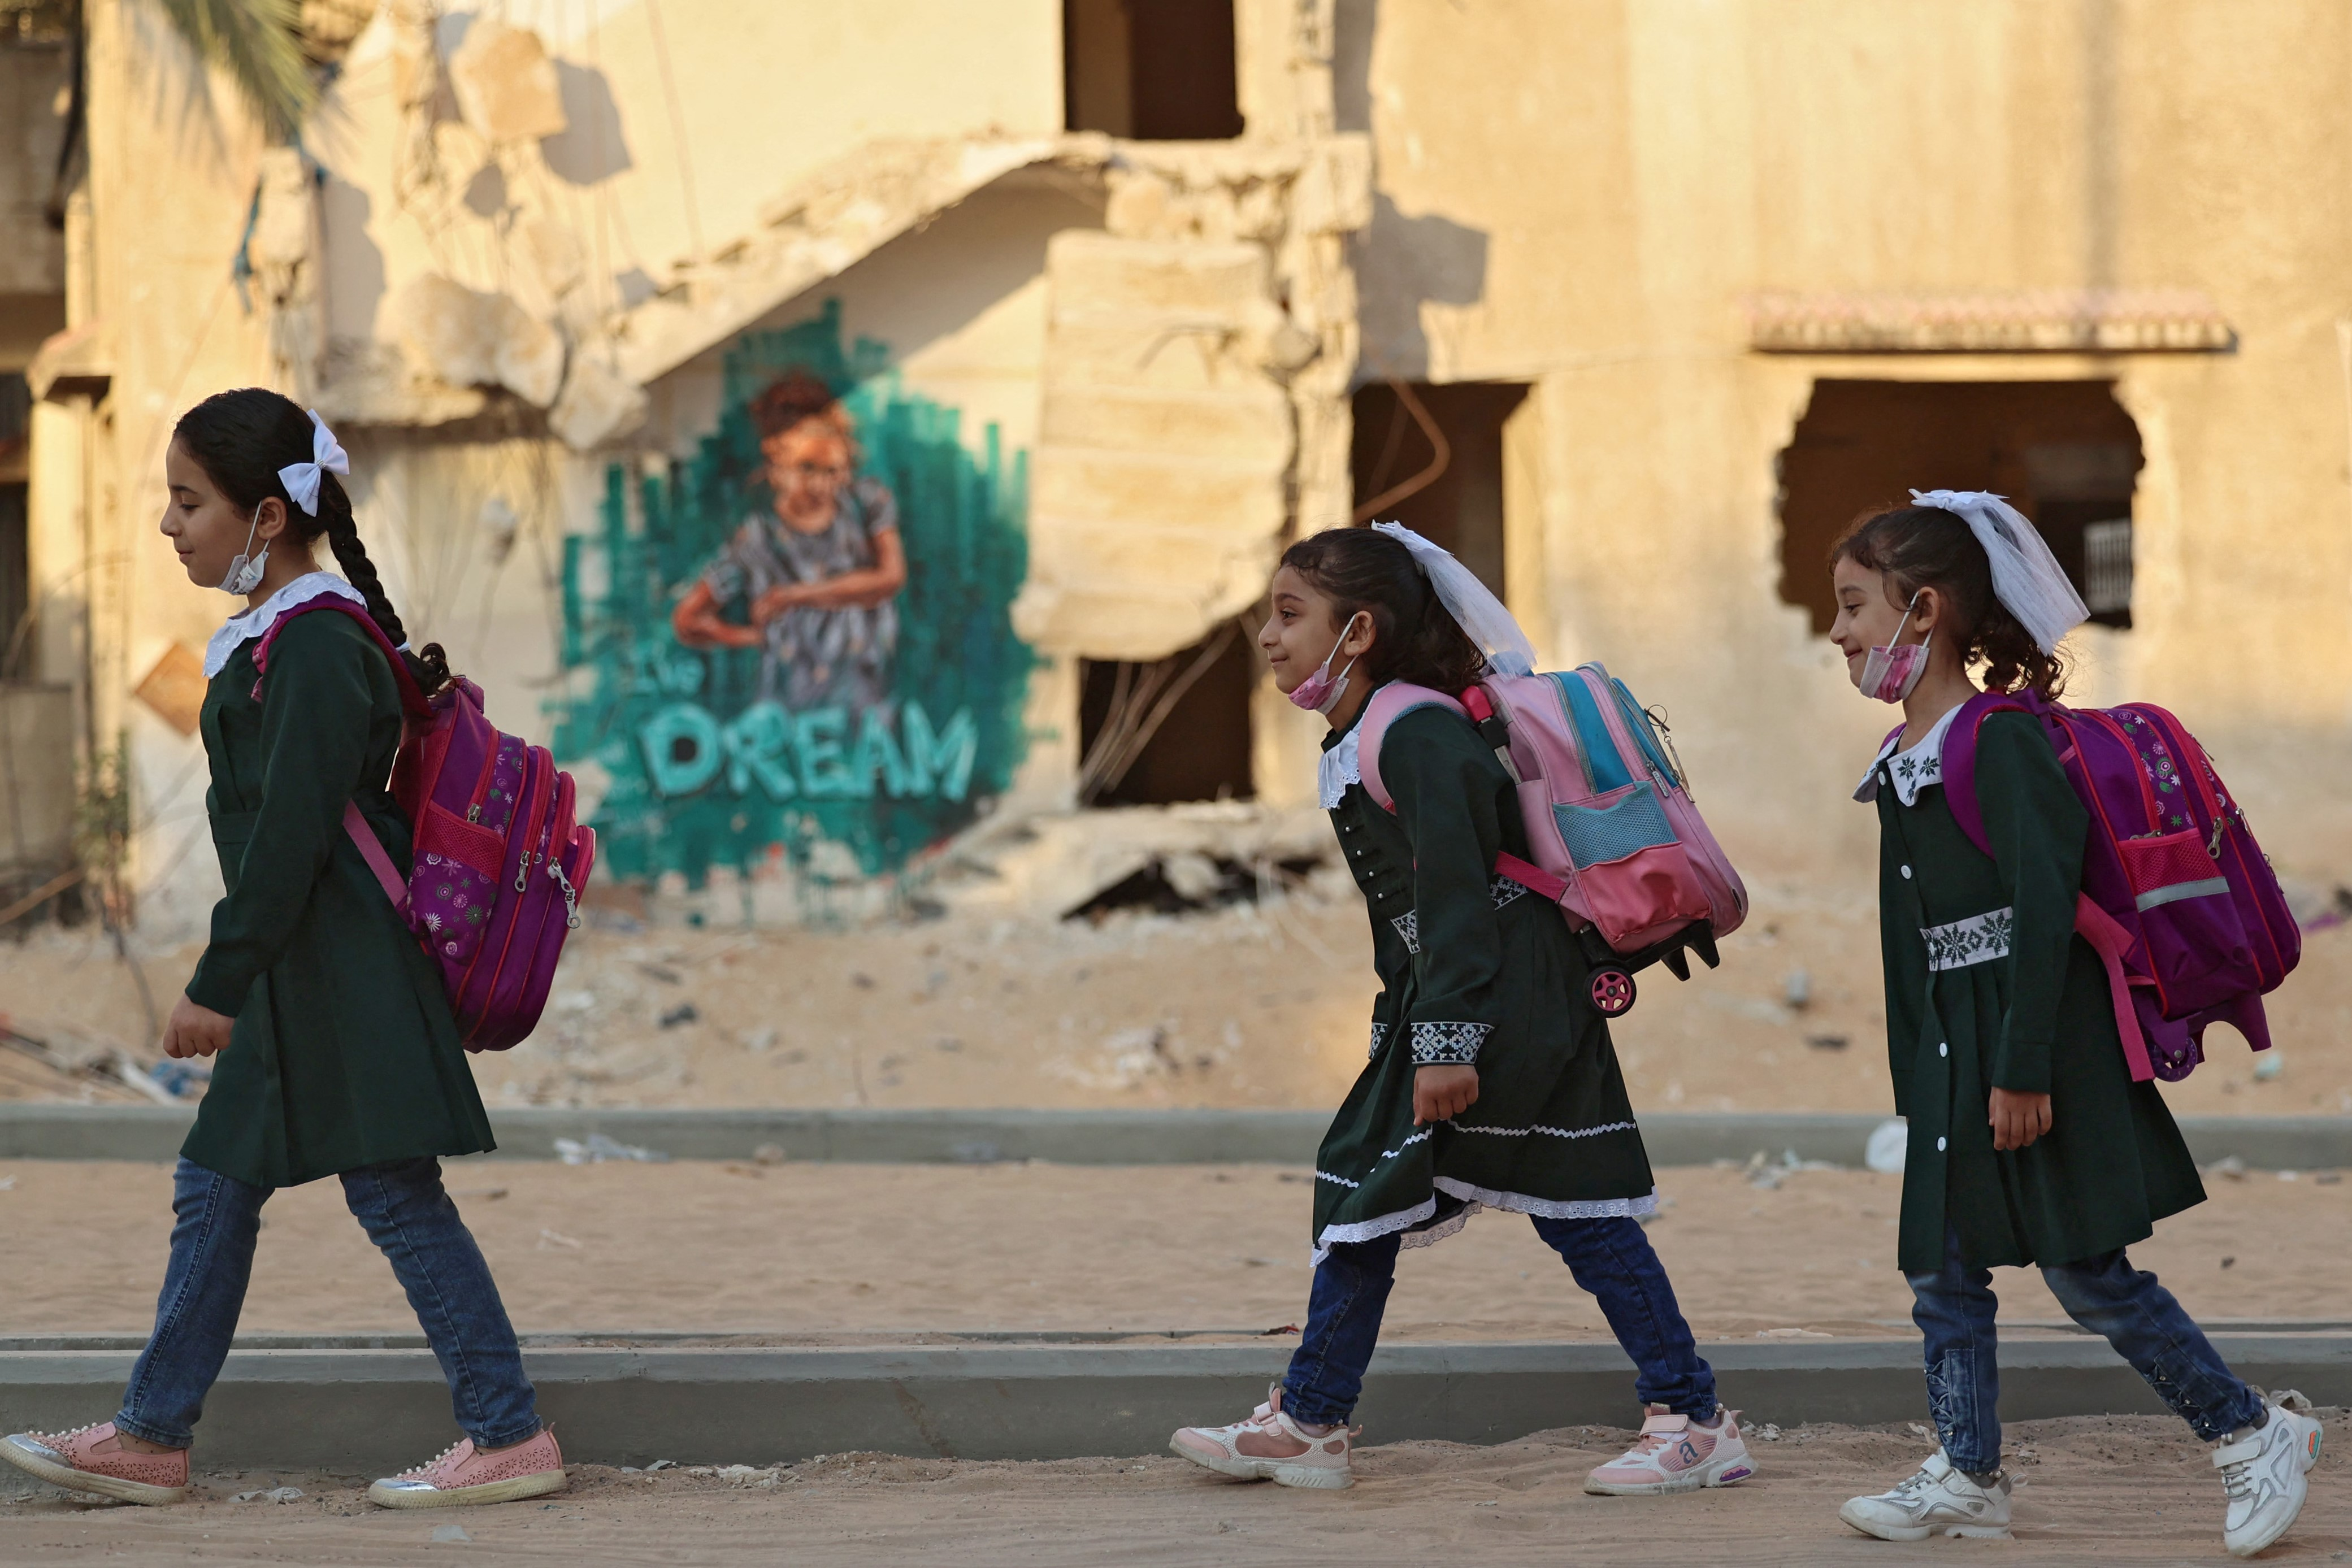 Palestinian children walk past a building, destroyed during the recent 11-day war between Israel and the Palestinian Hamas movement, on their way to school for the first day of the new scholastic year in Gaza City on August 16, 2021.